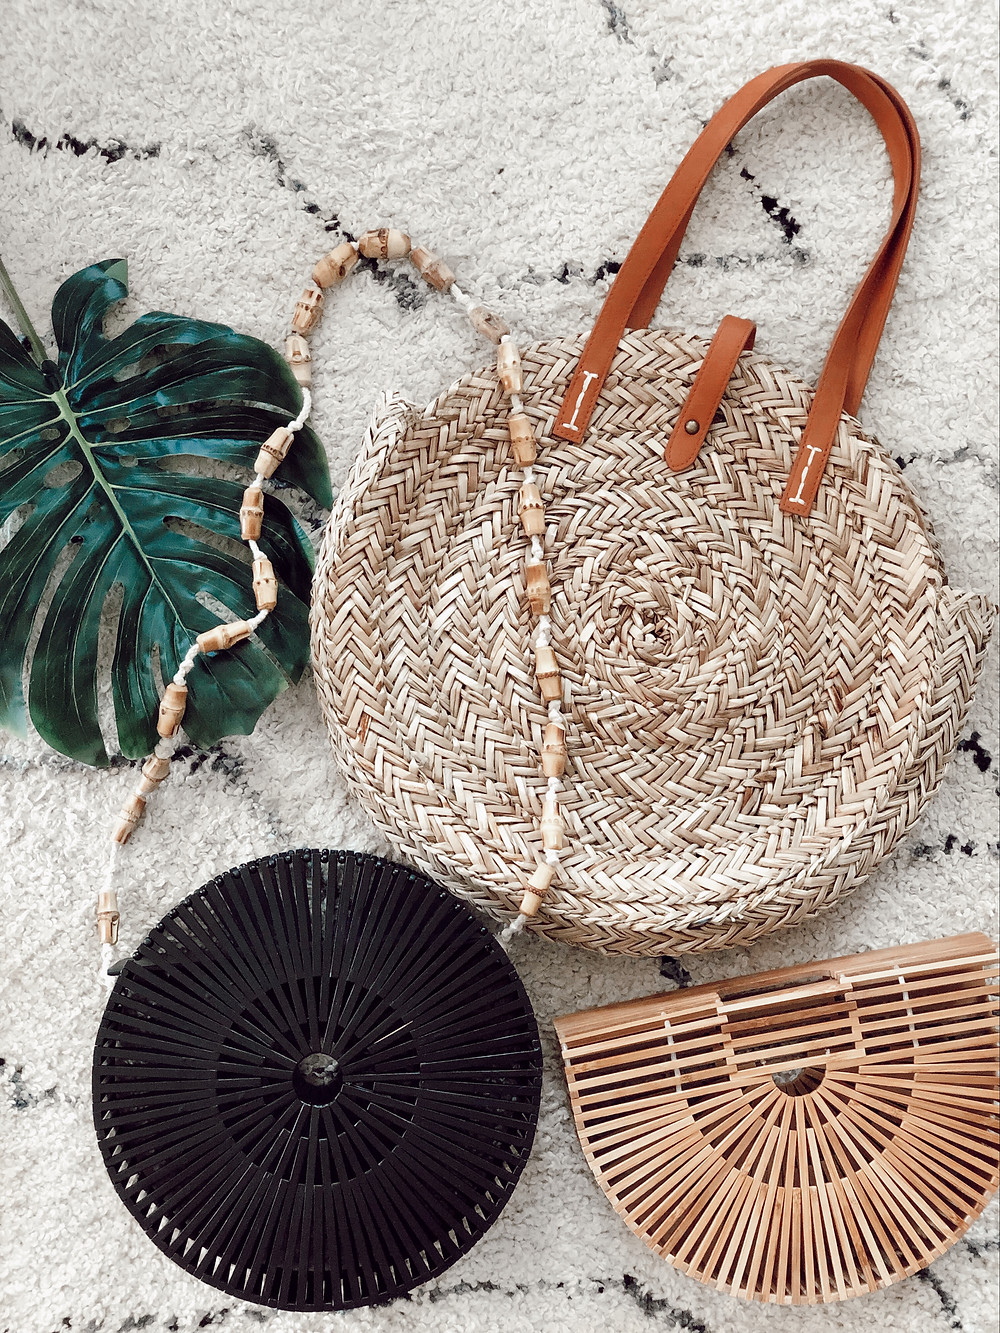 Round straw tote, round black wooden bag, and wooden ark bag lie on white rug